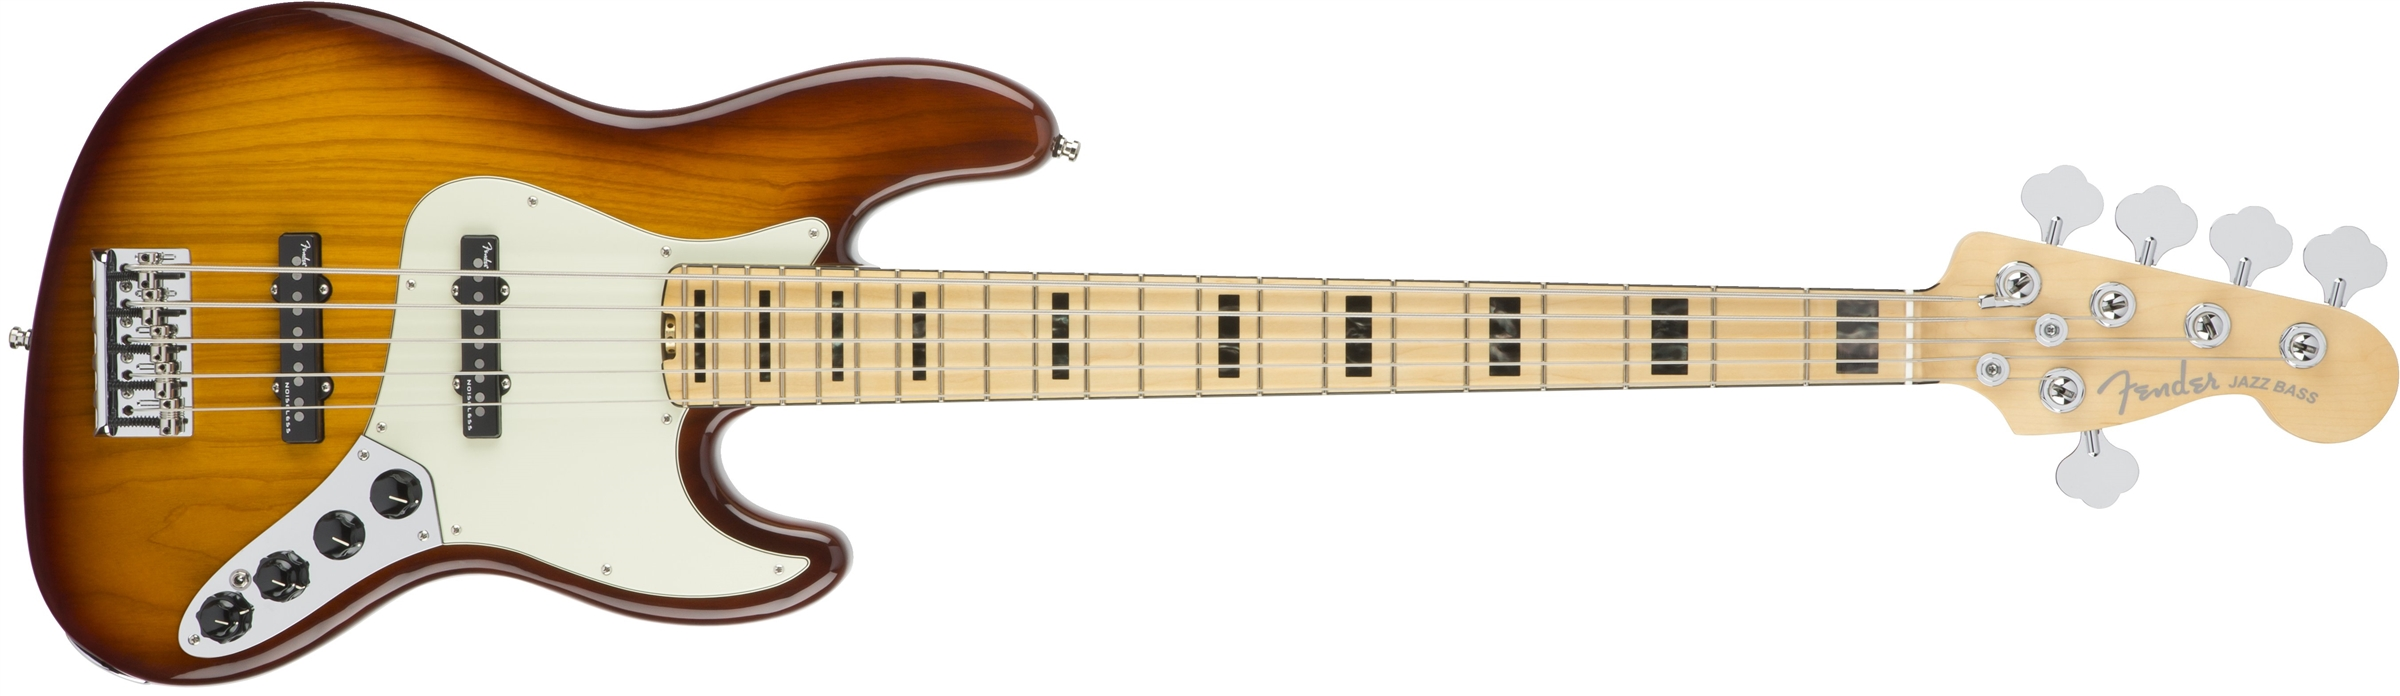 Fender American Elite Jazz Bass V